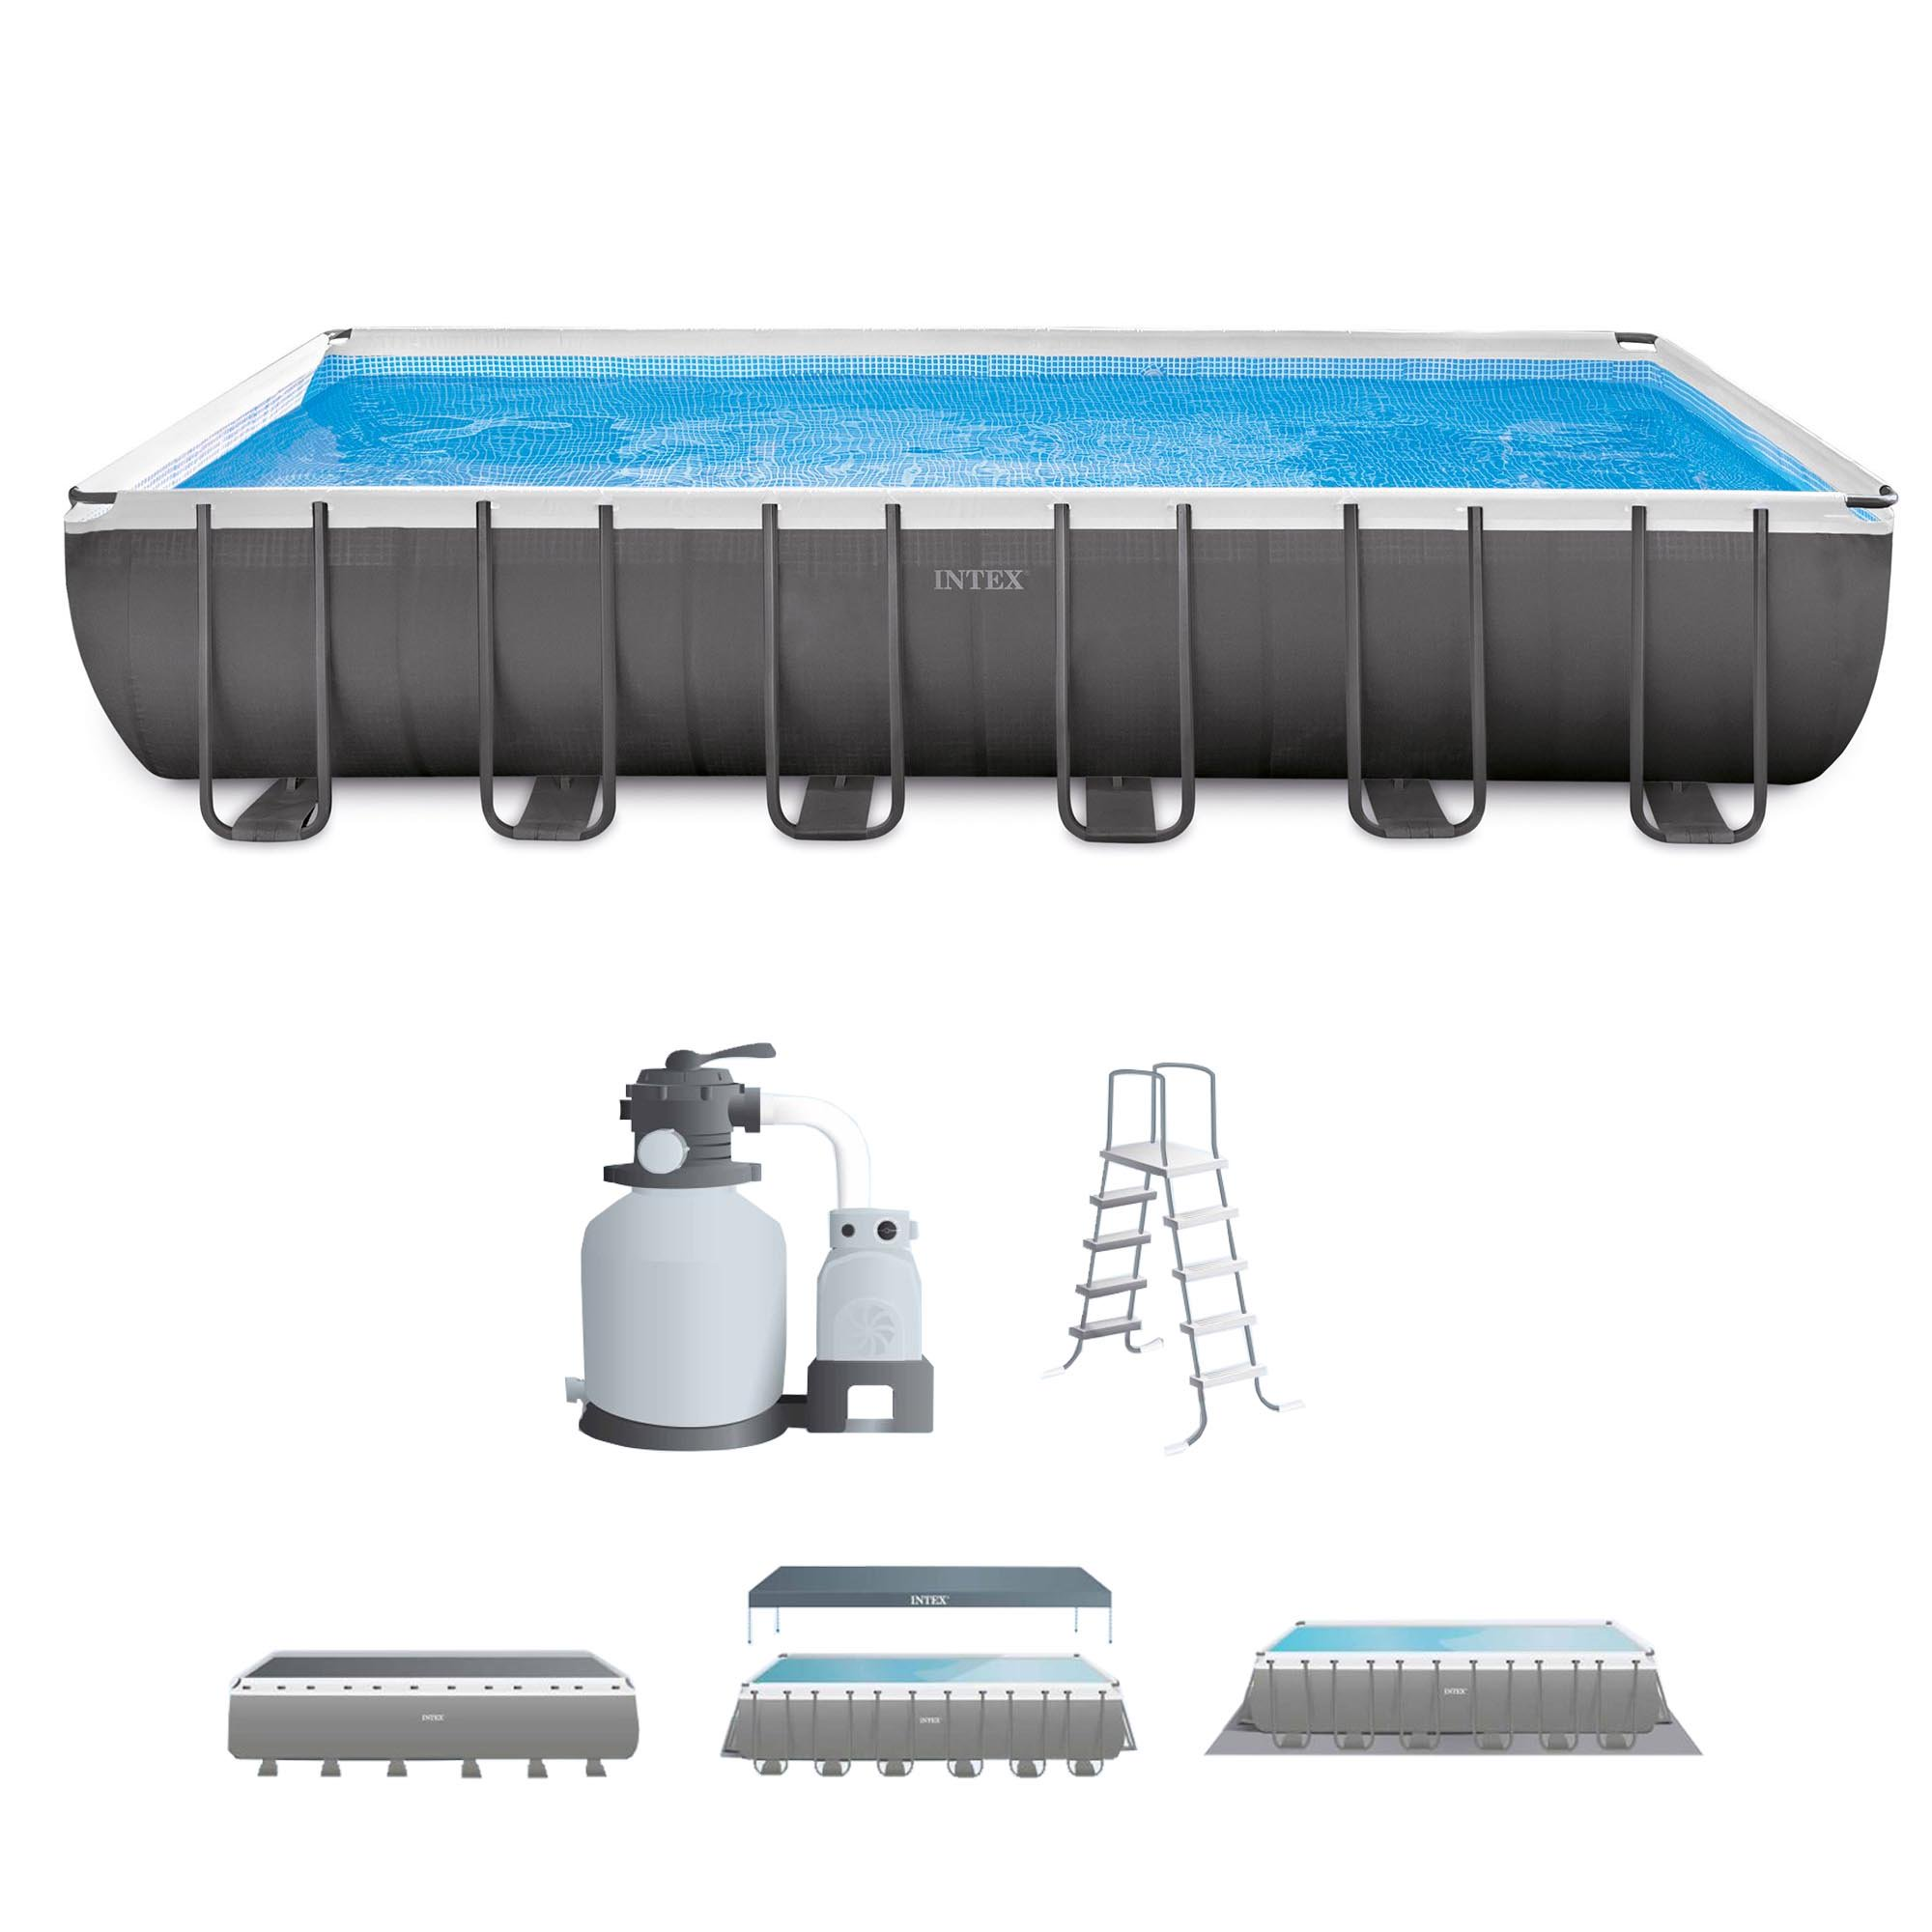 "Intex 24' x 12' x 52"" Ultra Frame Rectangular Above Ground Swimming Pool Set"